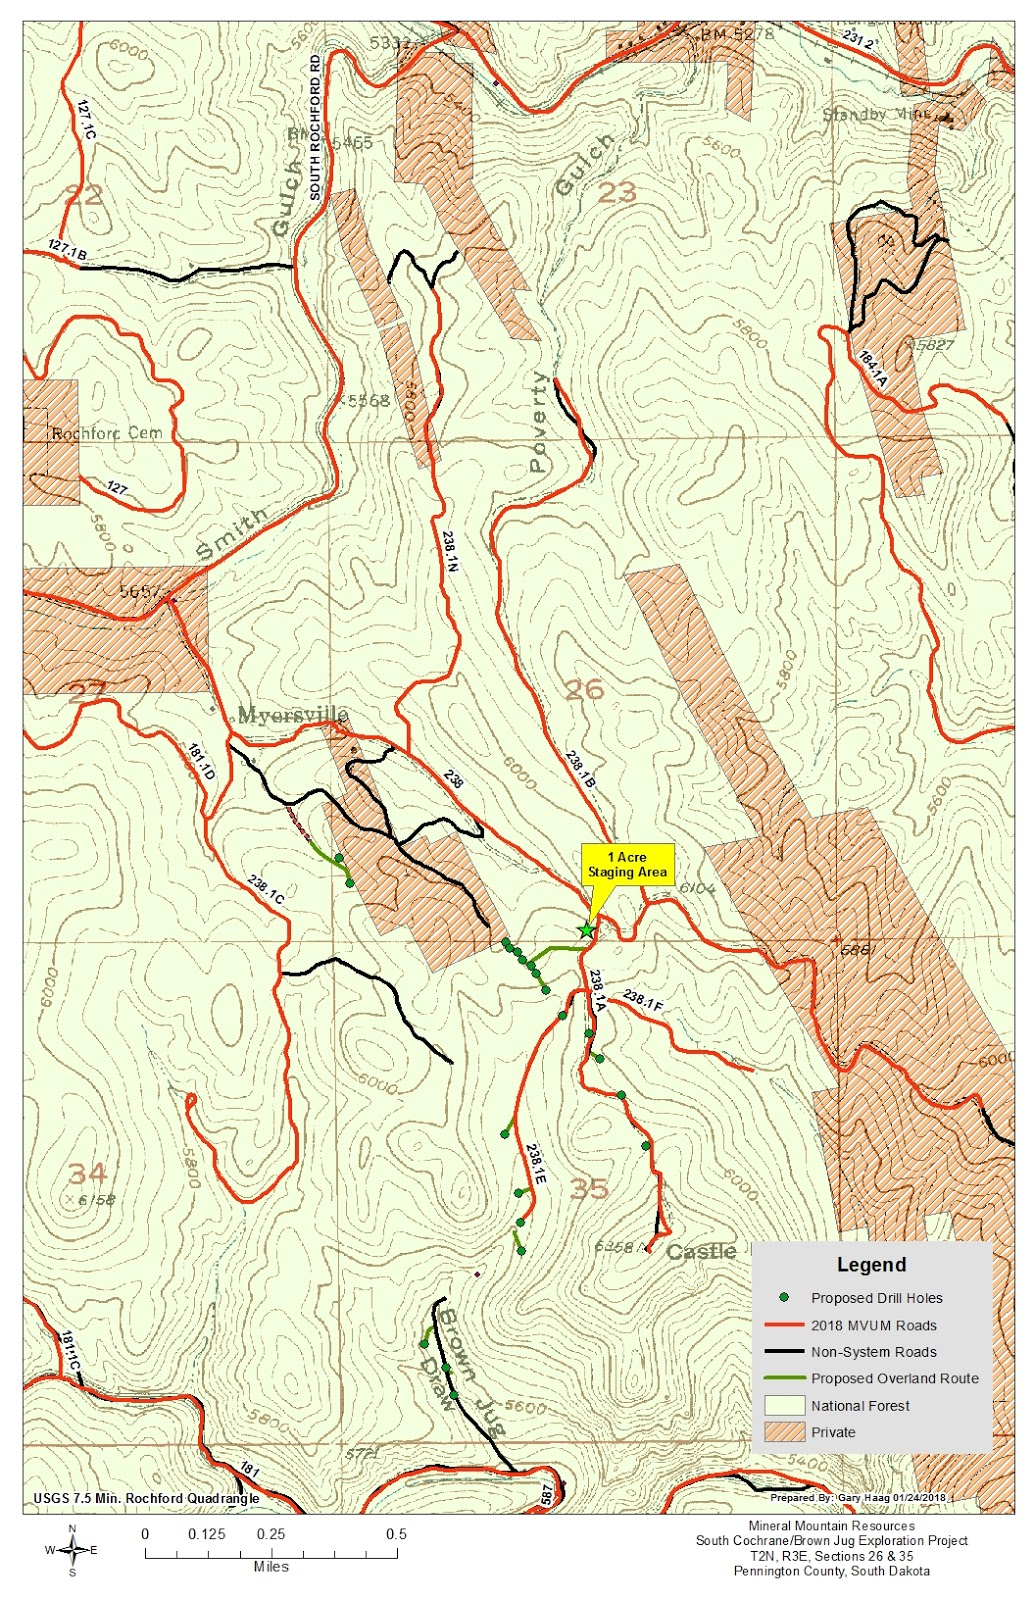 mining claims on federal land in the area as mapped by clean water alliance is below